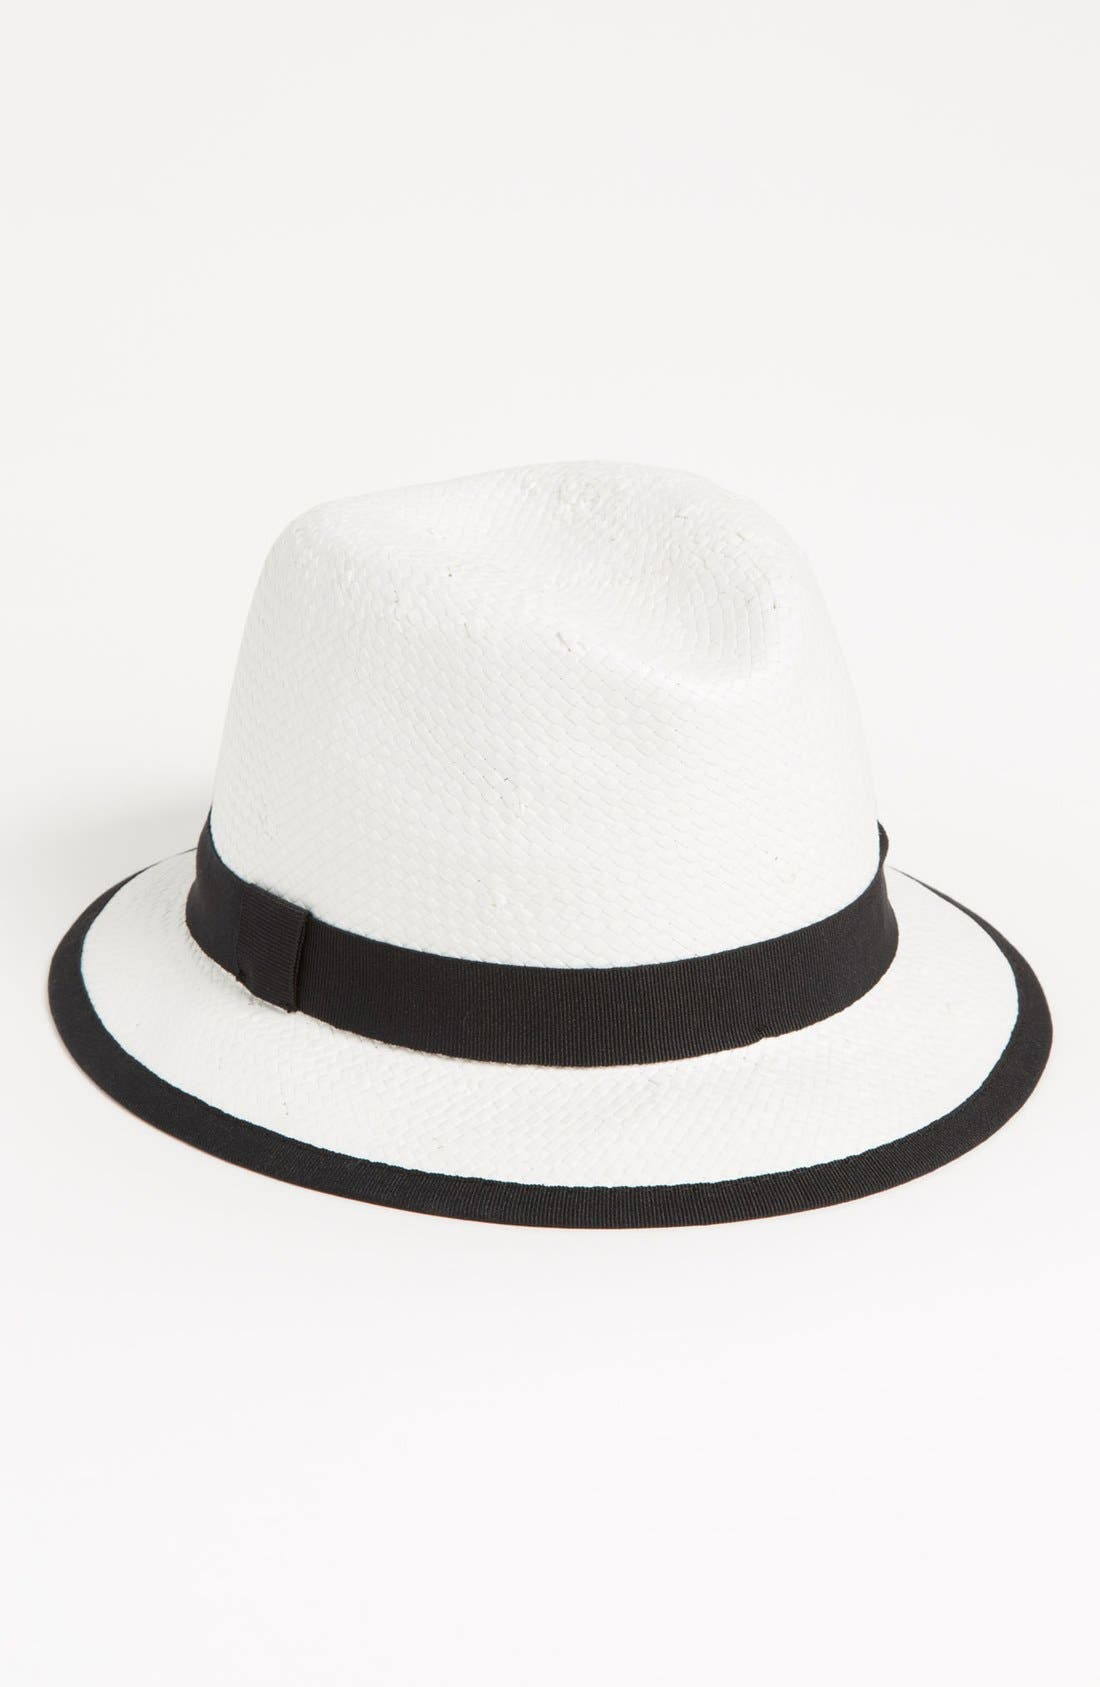 TARNISH,                             'Fluorescent' Fedora,                             Main thumbnail 1, color,                             100